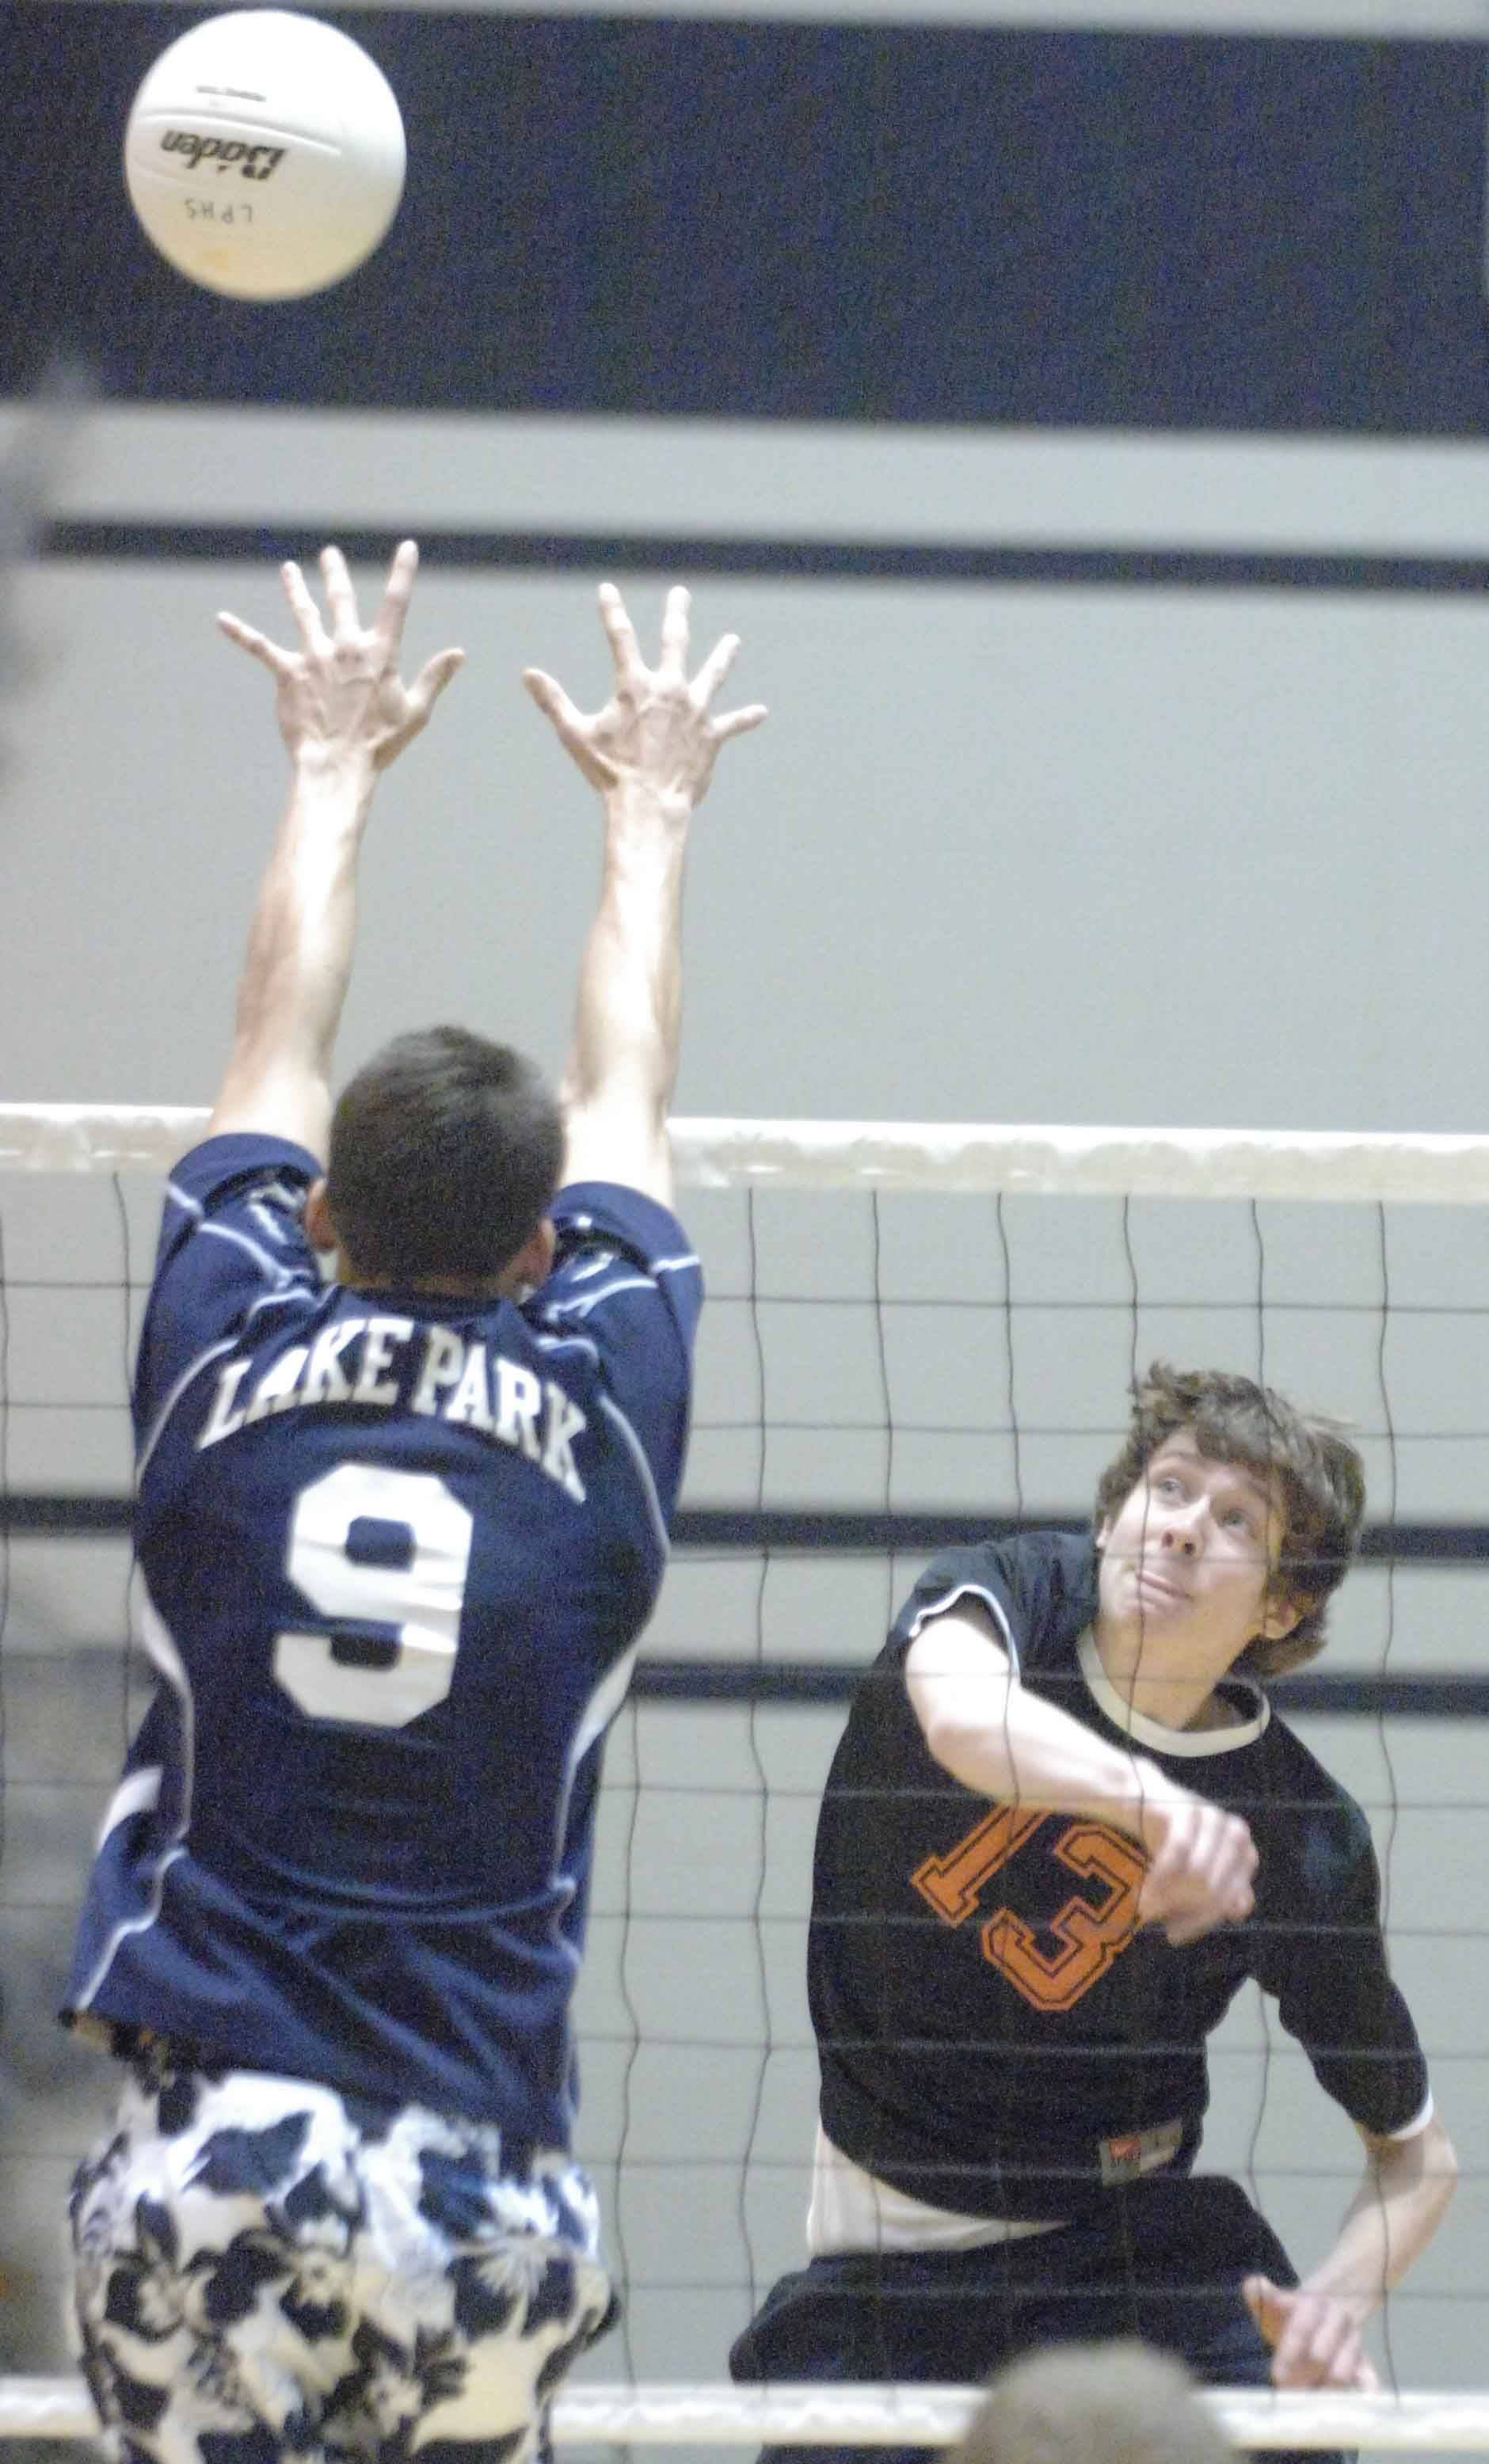 Trace Szczygiel,left, of Lake Park tries to block a shot from Tom Sheehan of St. Charles East. This took place during the St. Charles East at Lake Park boys volleyball game Tuesday.